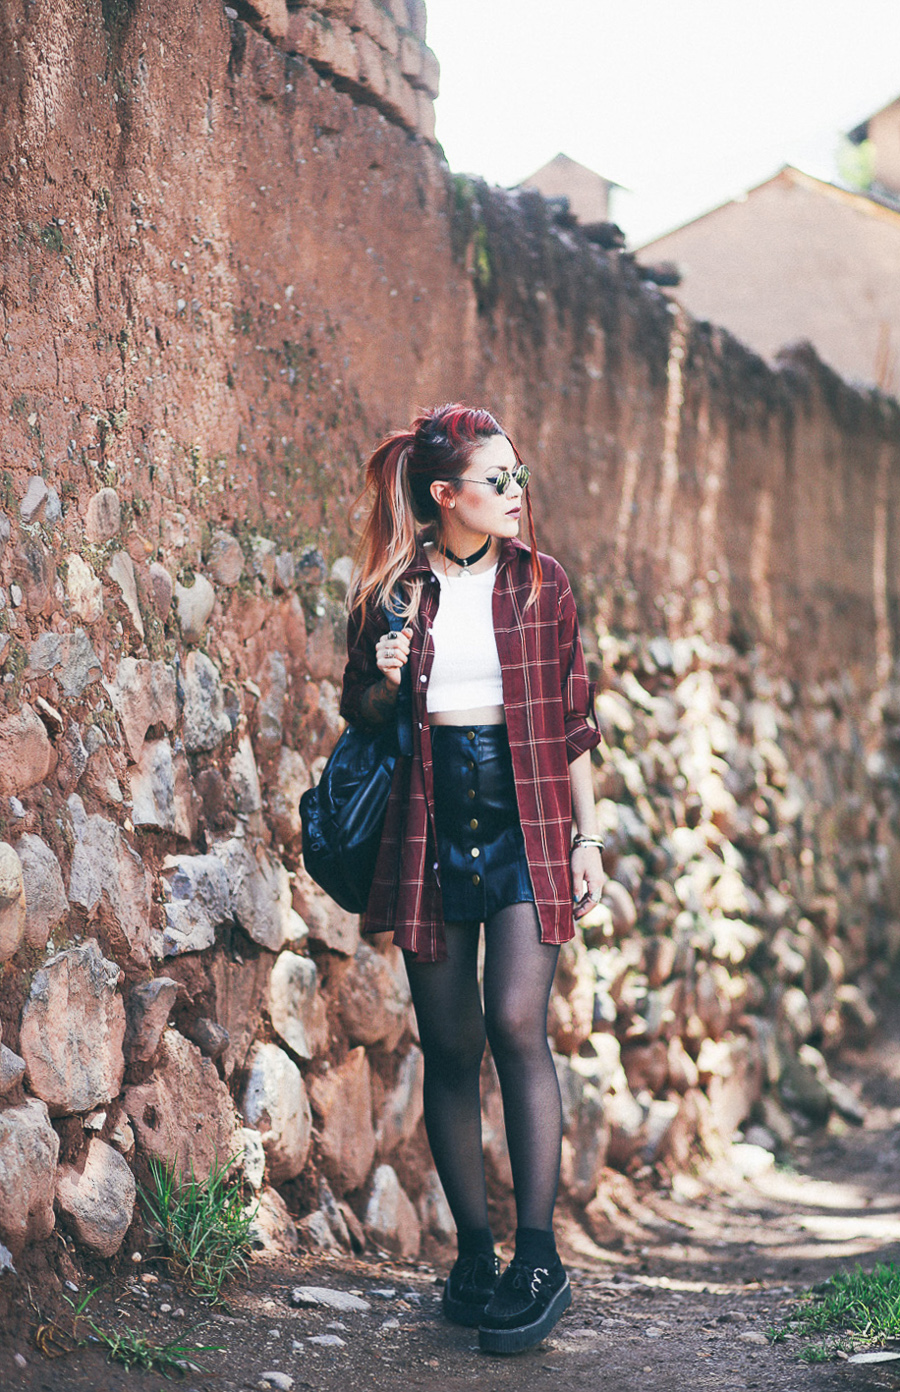 Le Happy wearing Lord and Taylor crop top with leather skirt in Cusco